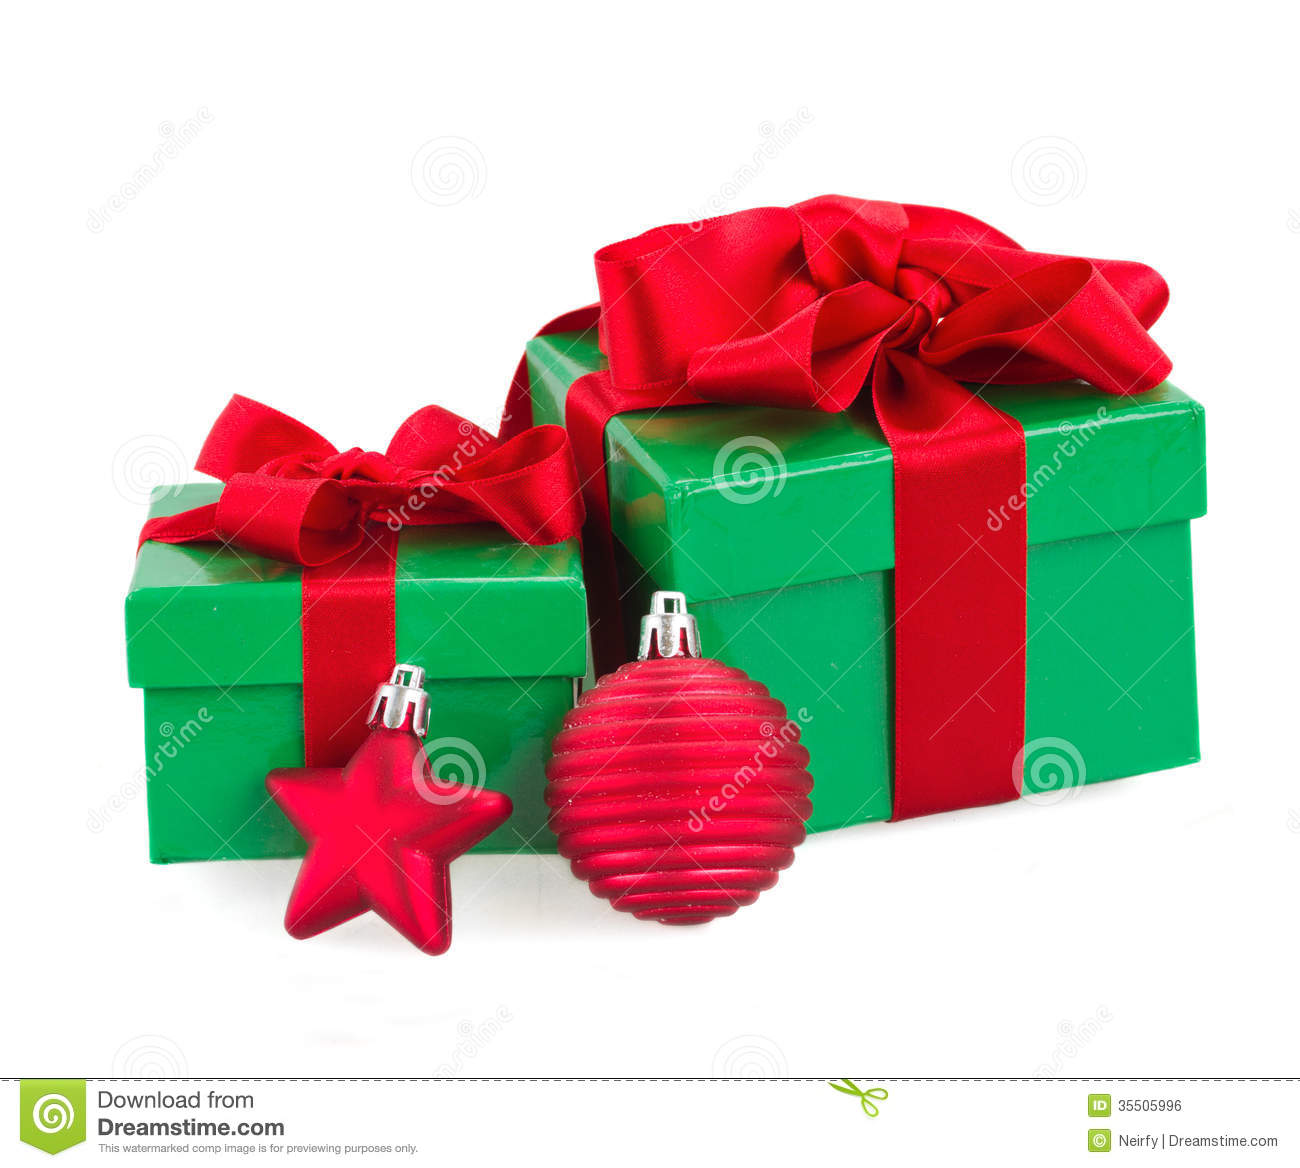 Green Gift Boxes And Christmas Red Decorations Stock Photo